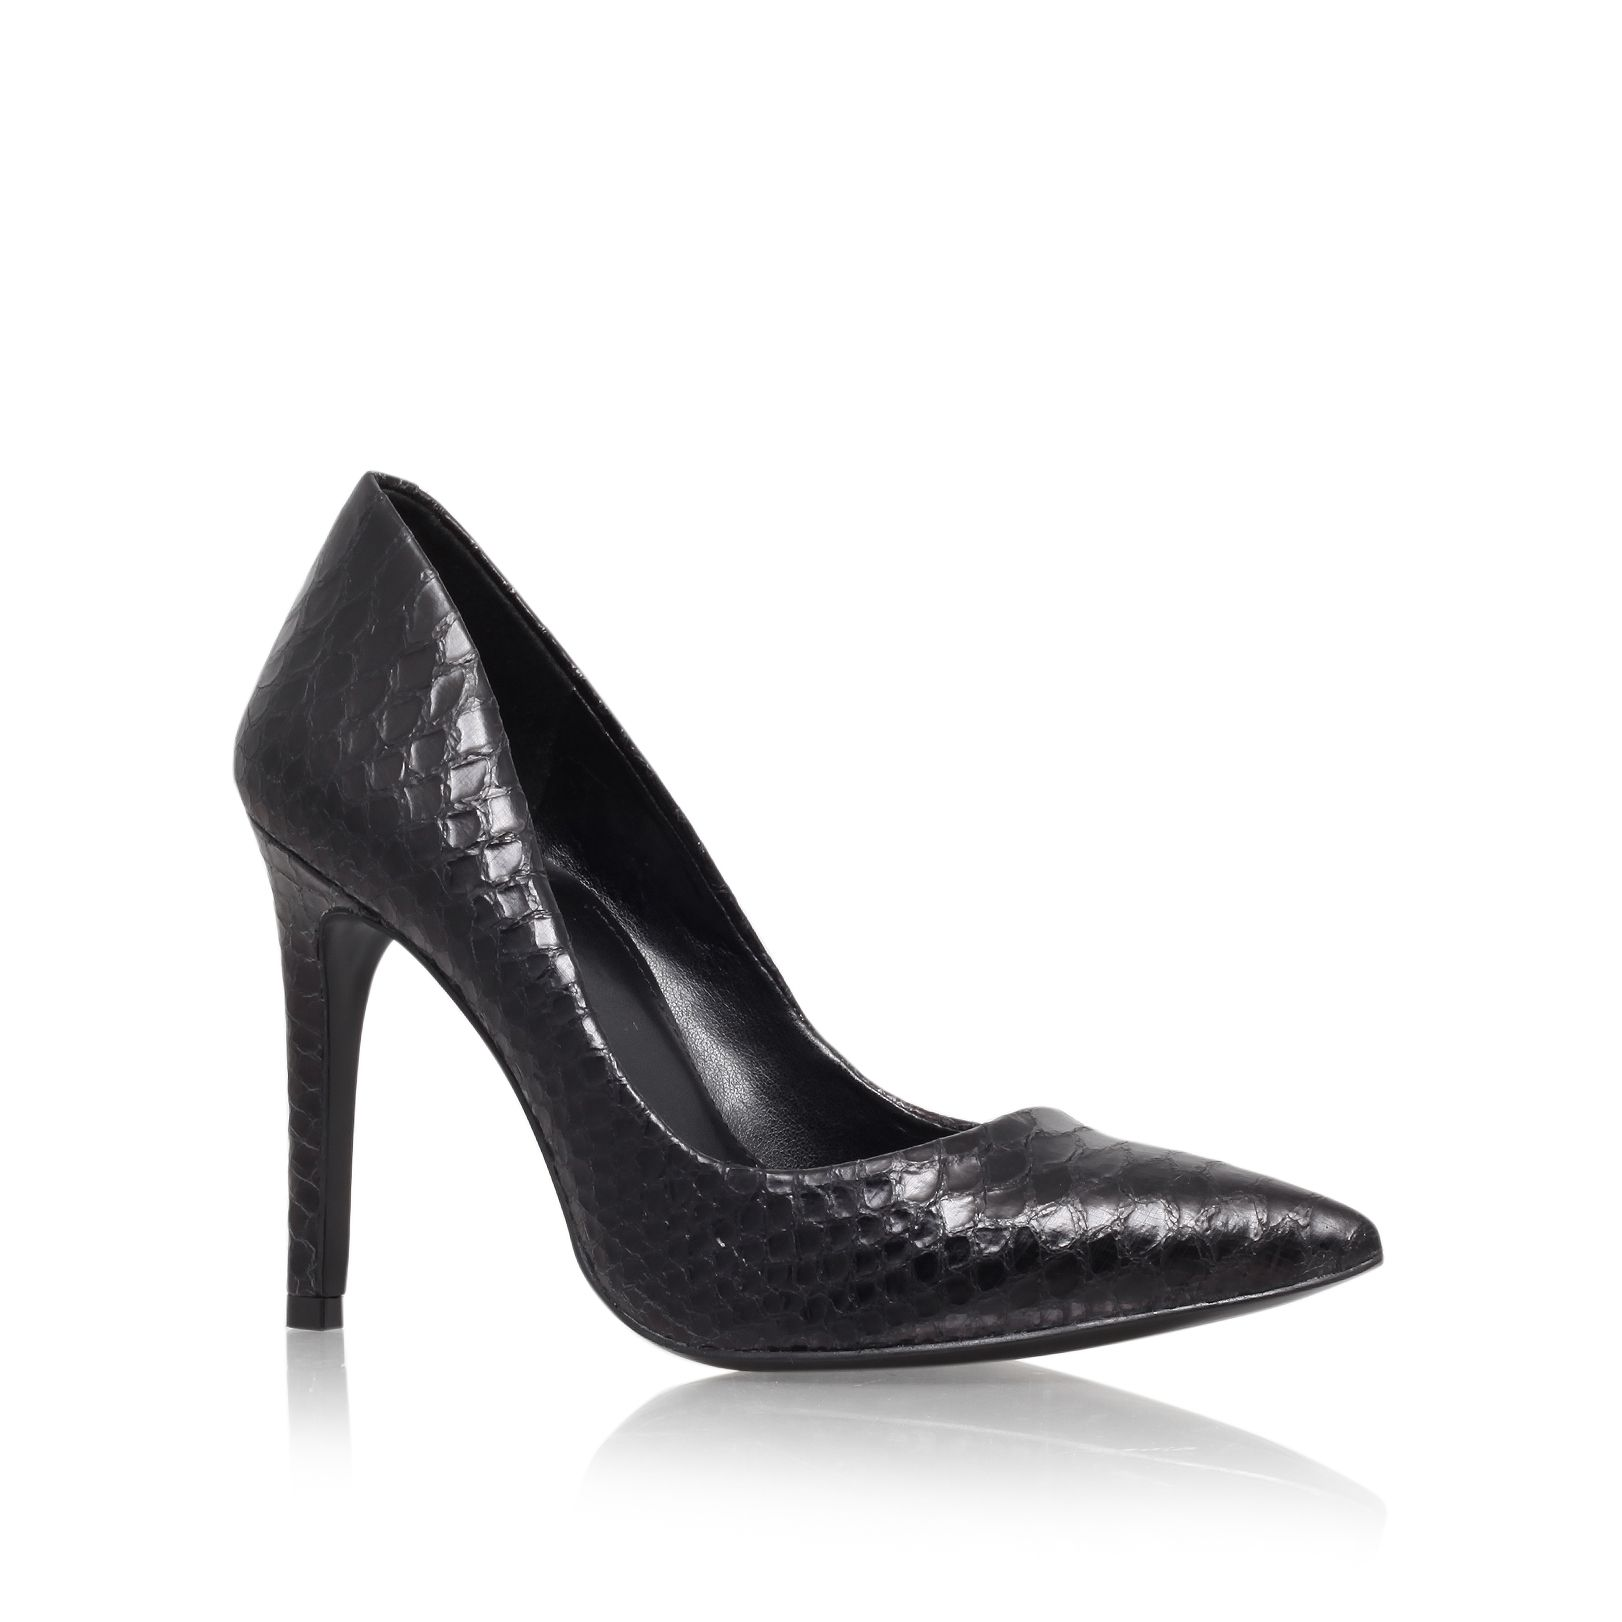 Westin high heeled court shoes